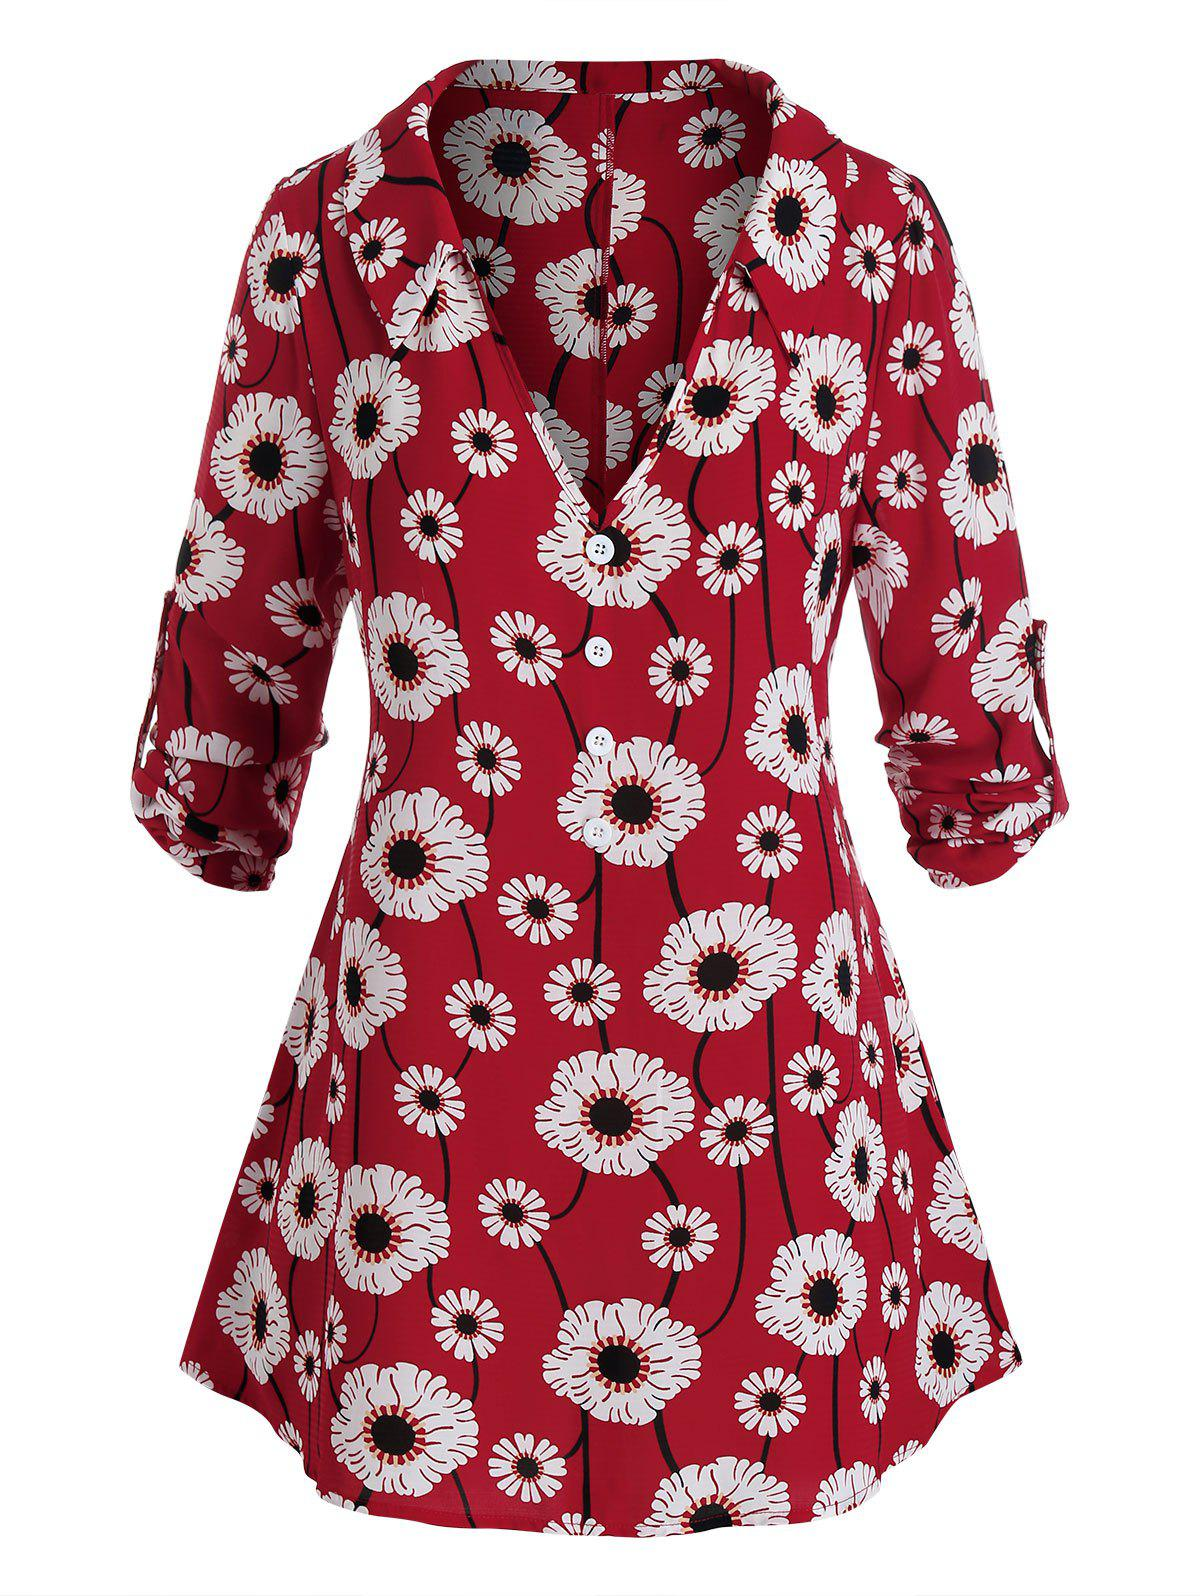 Plus Size Flower Print Plunge Roll Up Sleeve Tunic Top - RED 5X